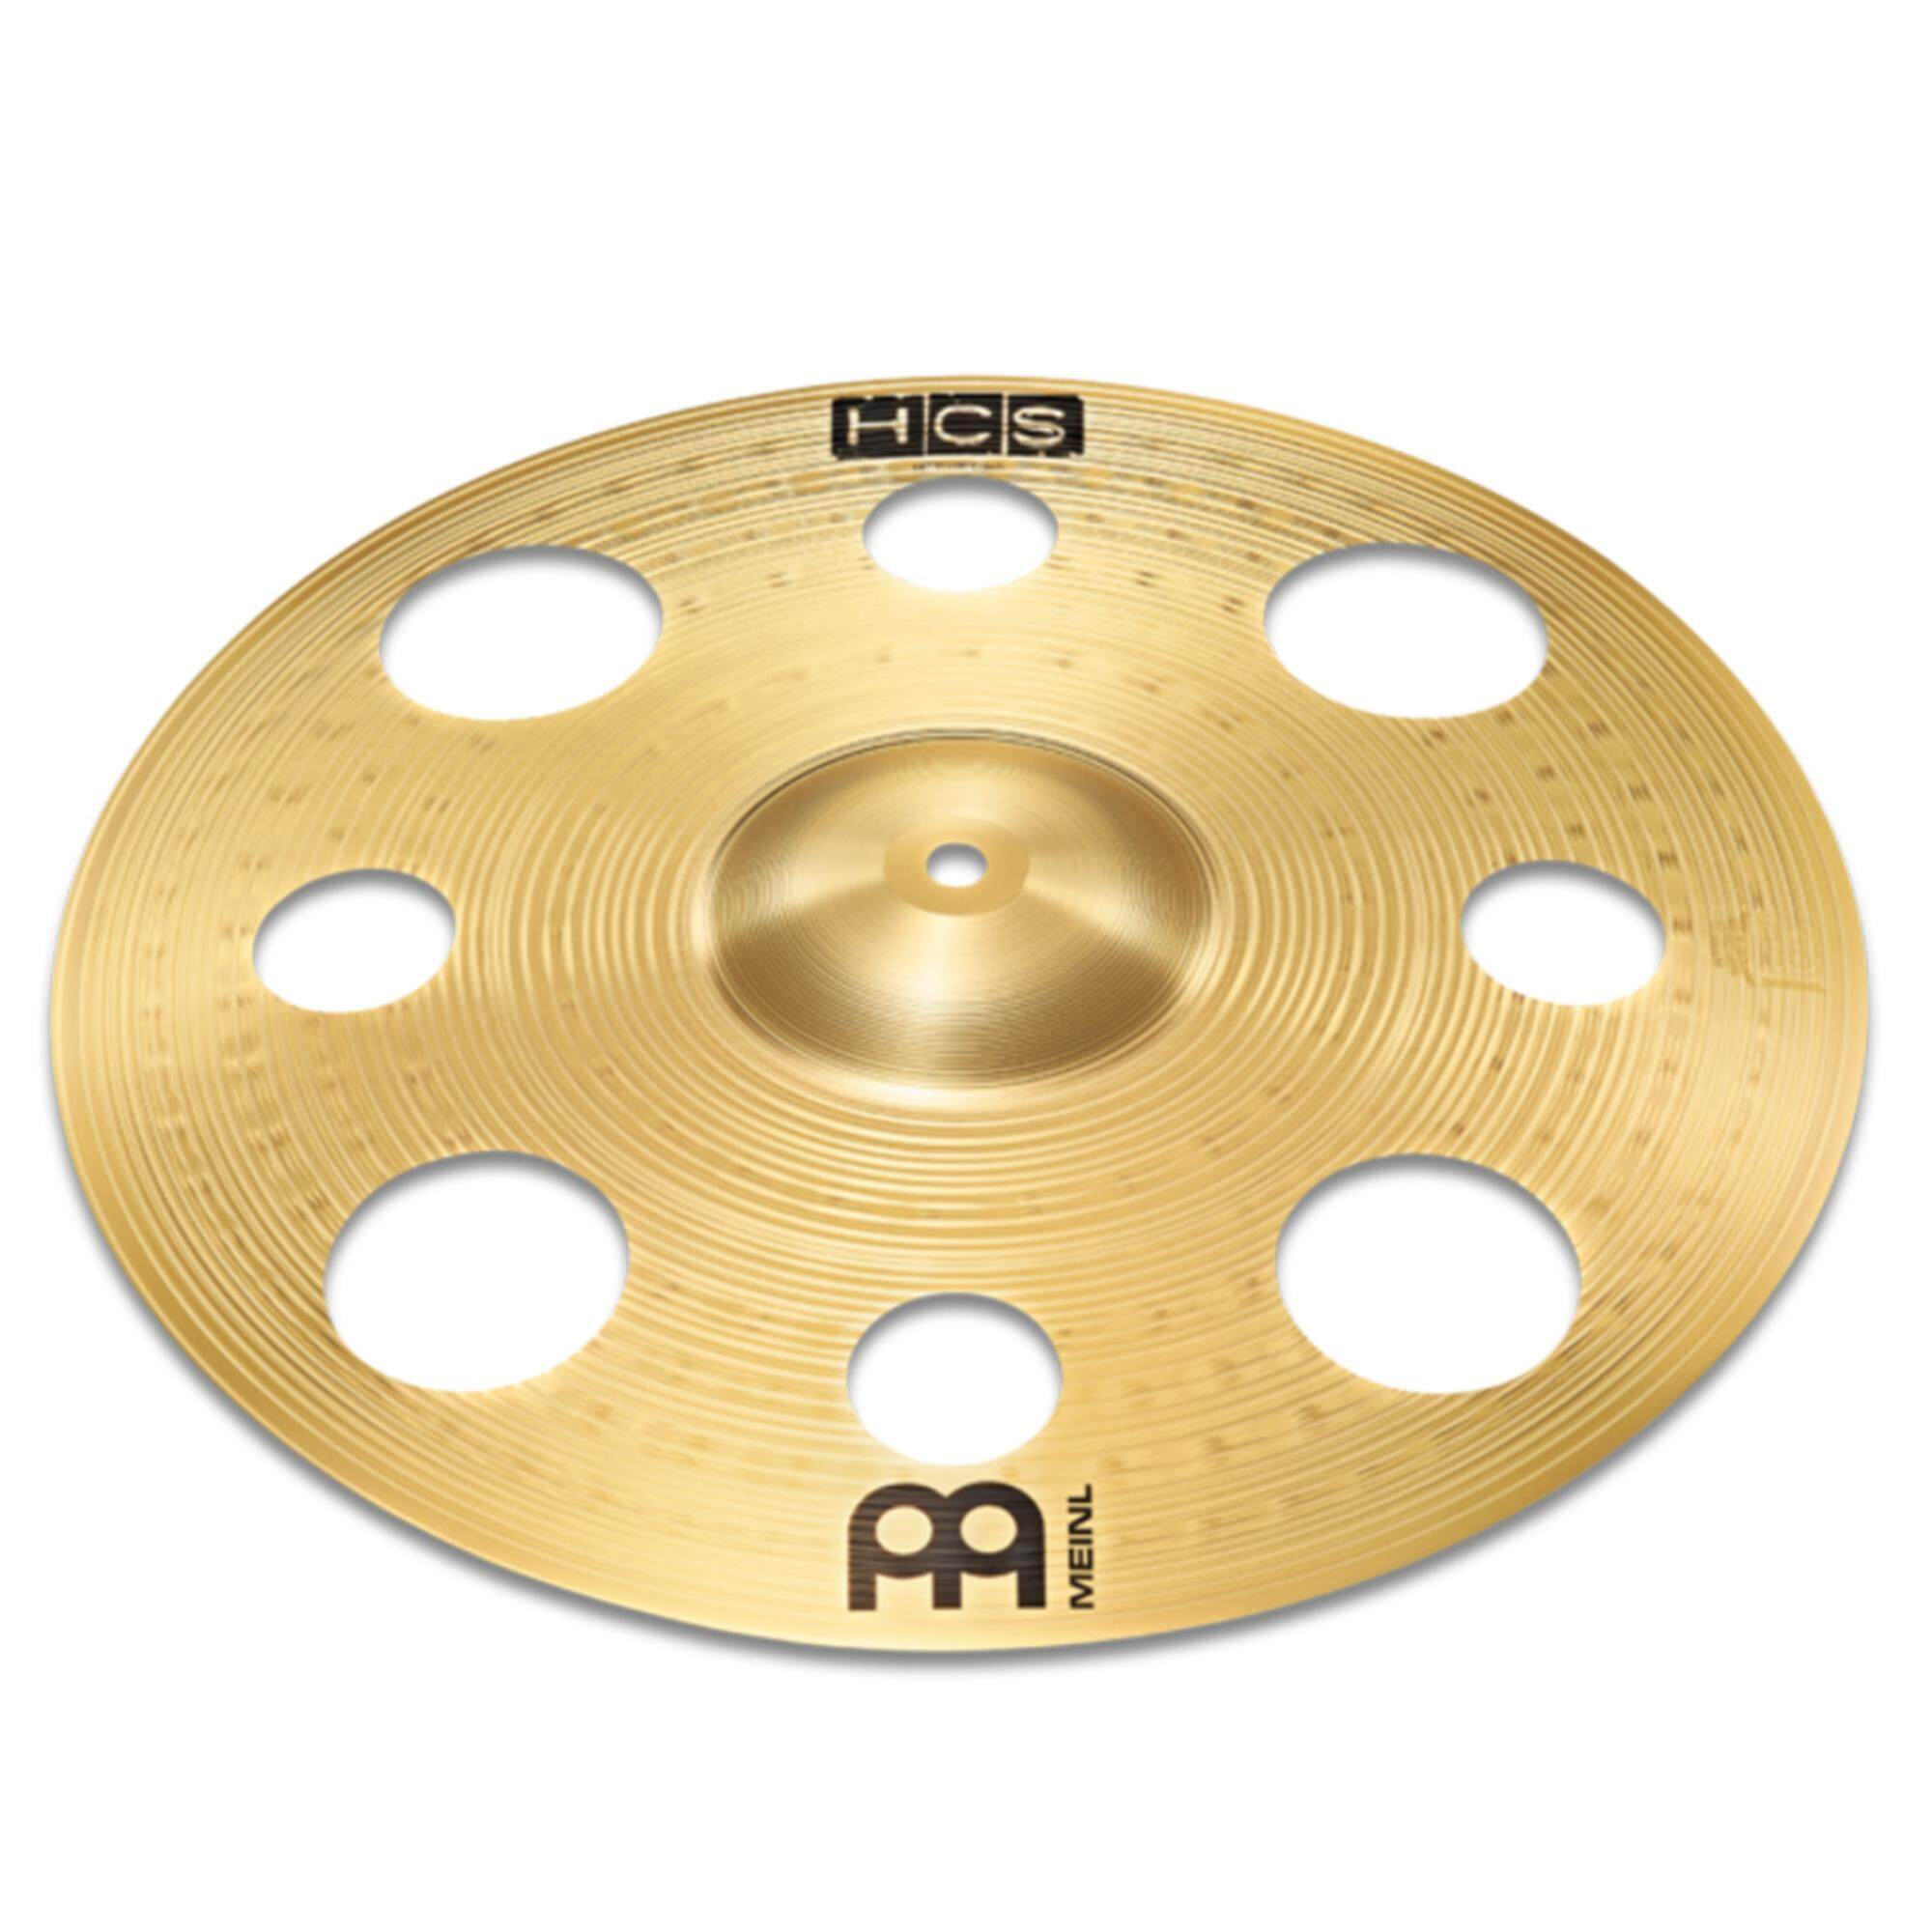 Aa Meinl ฉาบ Cymbal Hcs 16 Trc 16 Trash By Bangkok Music.